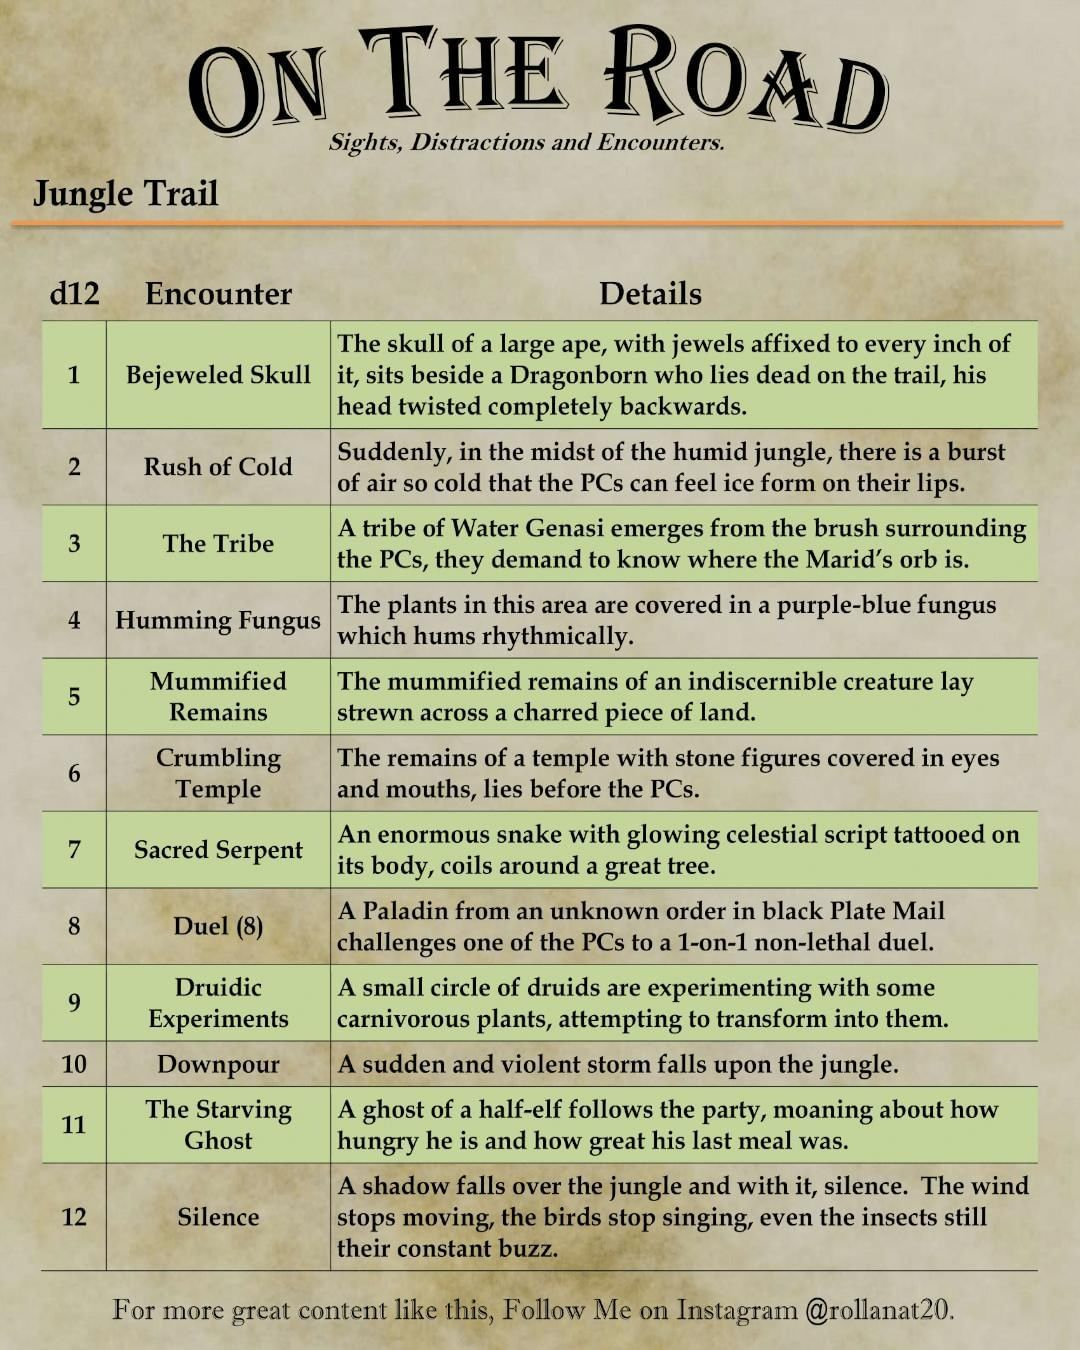 Nat20 quests random tables on instagram are you